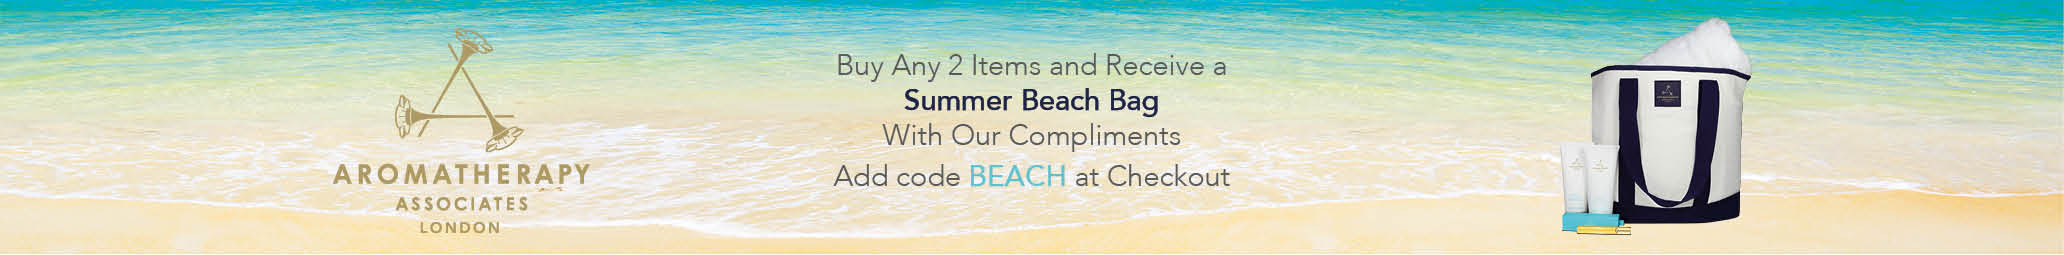 Free Beach bag with any 2 Aromatherapy Associates products